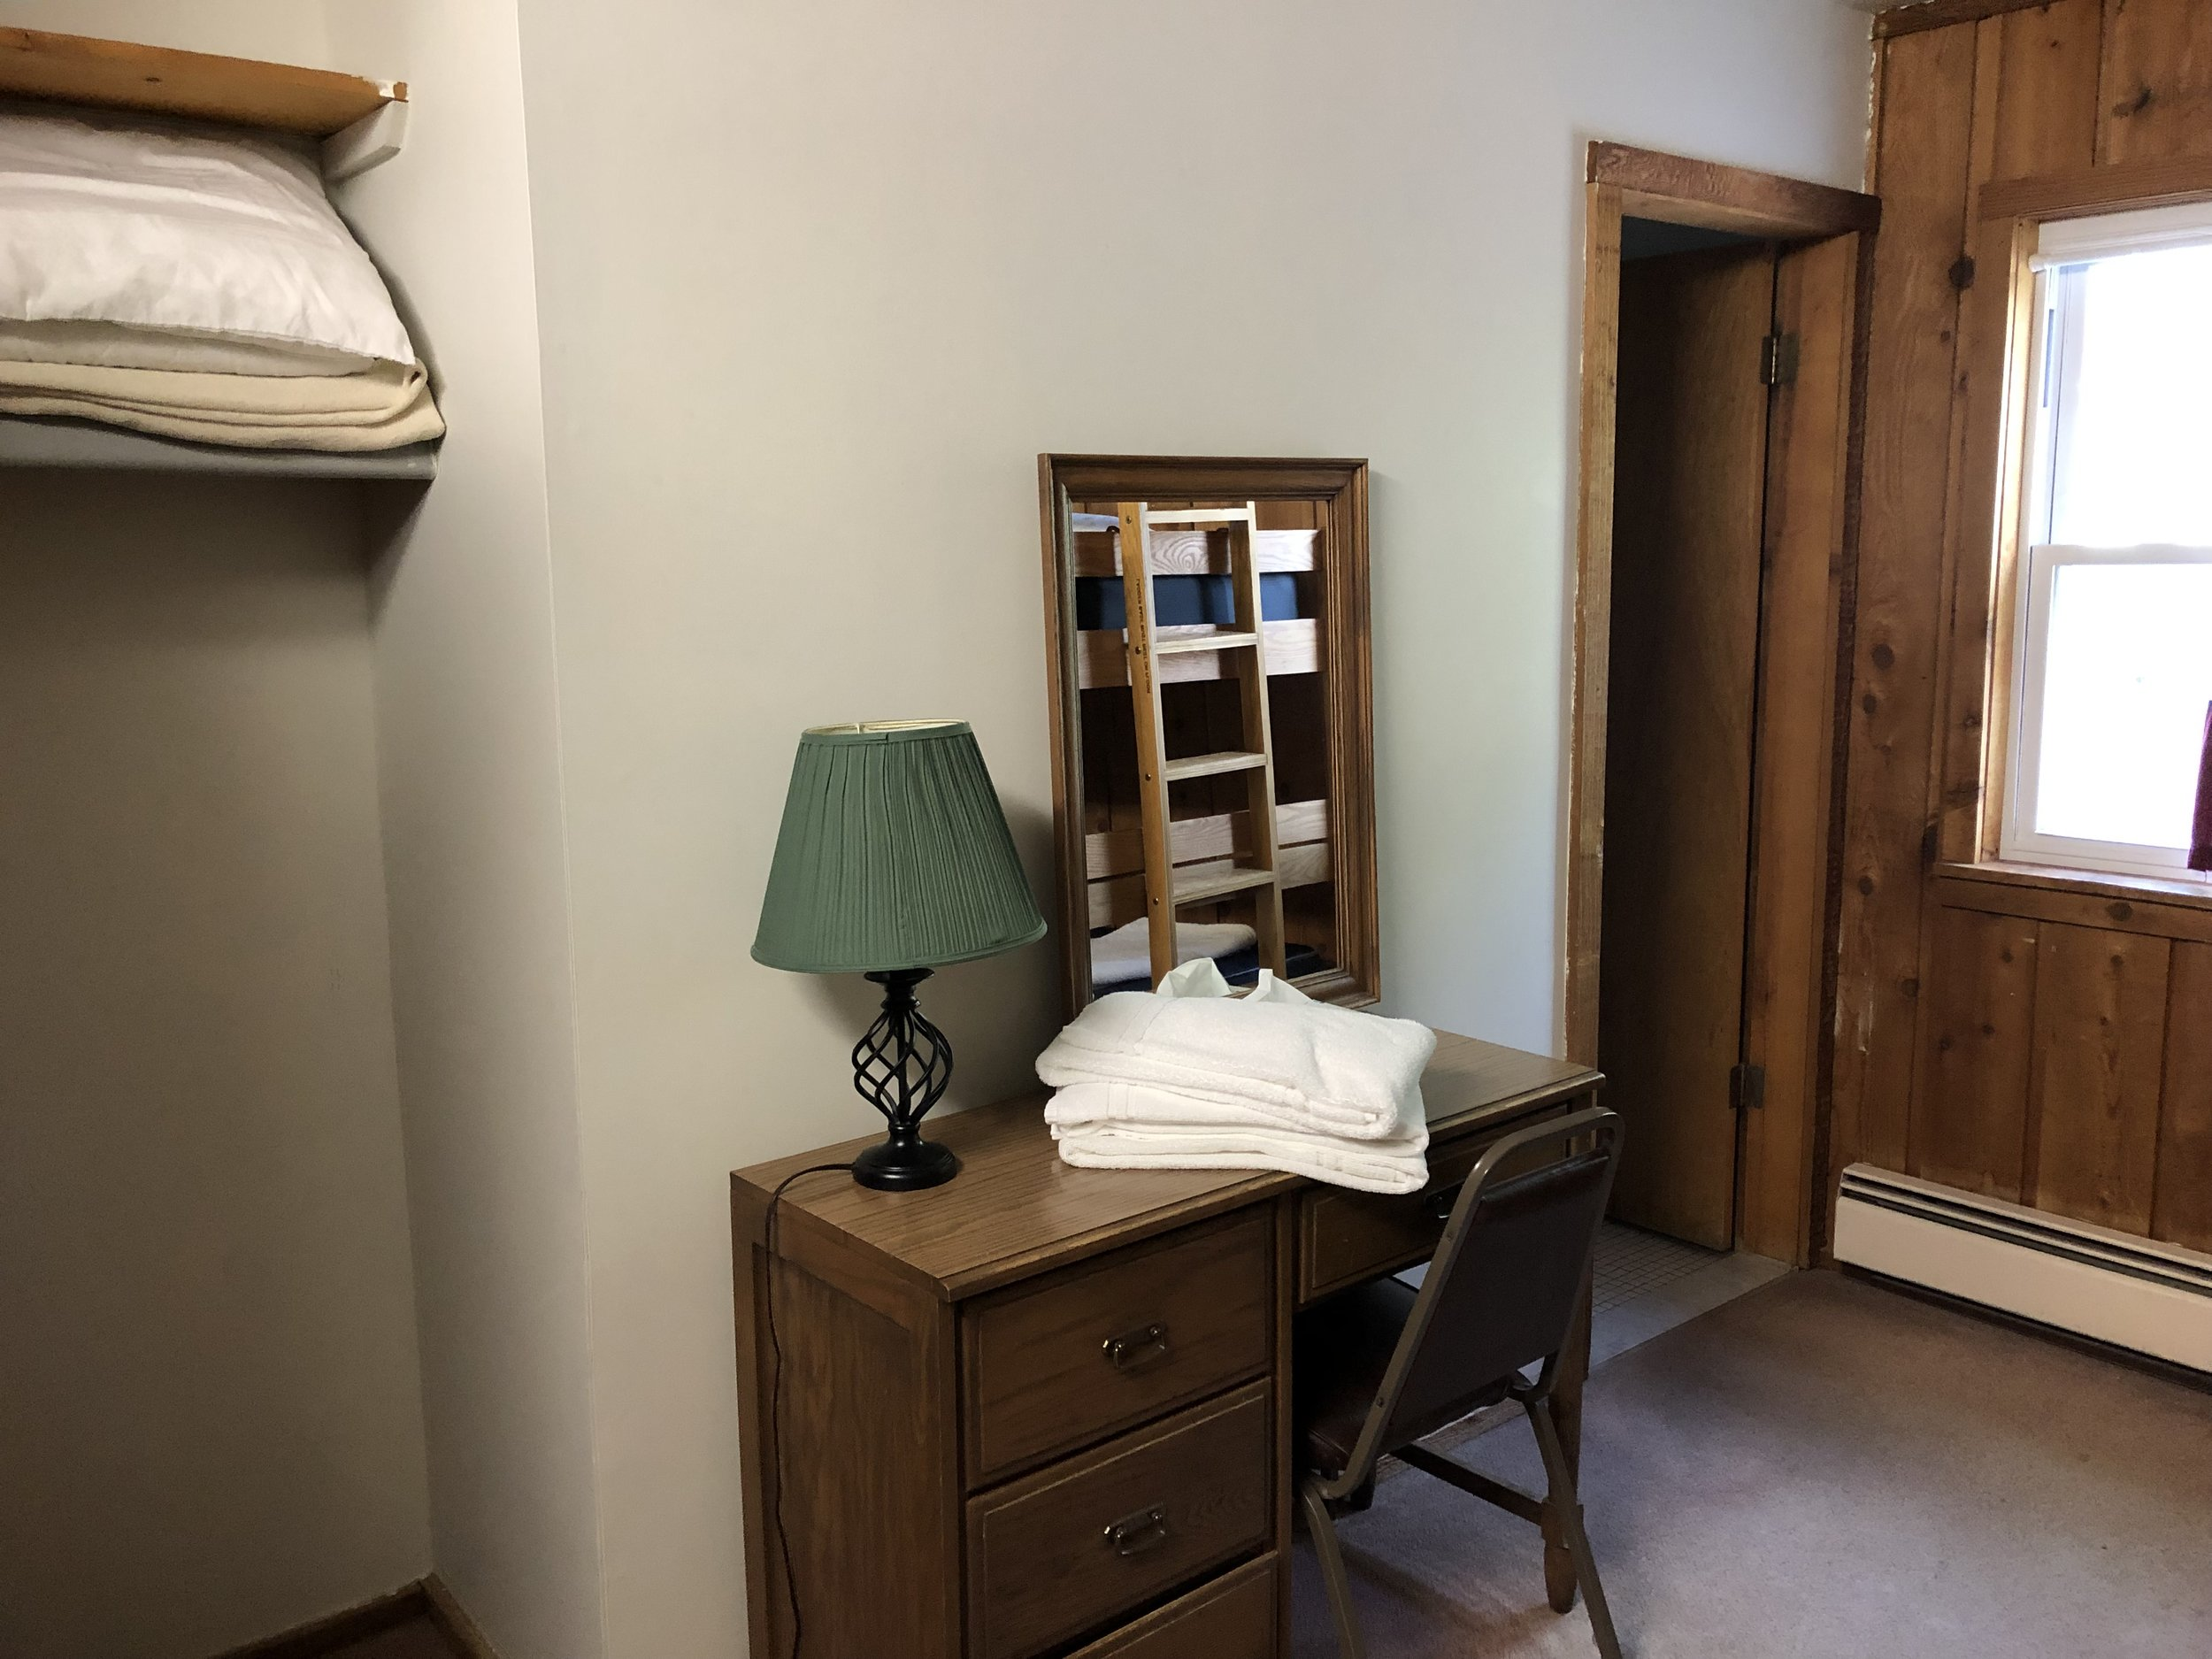 Room 212 - Desk with mirror and closet area for hanging clothes.